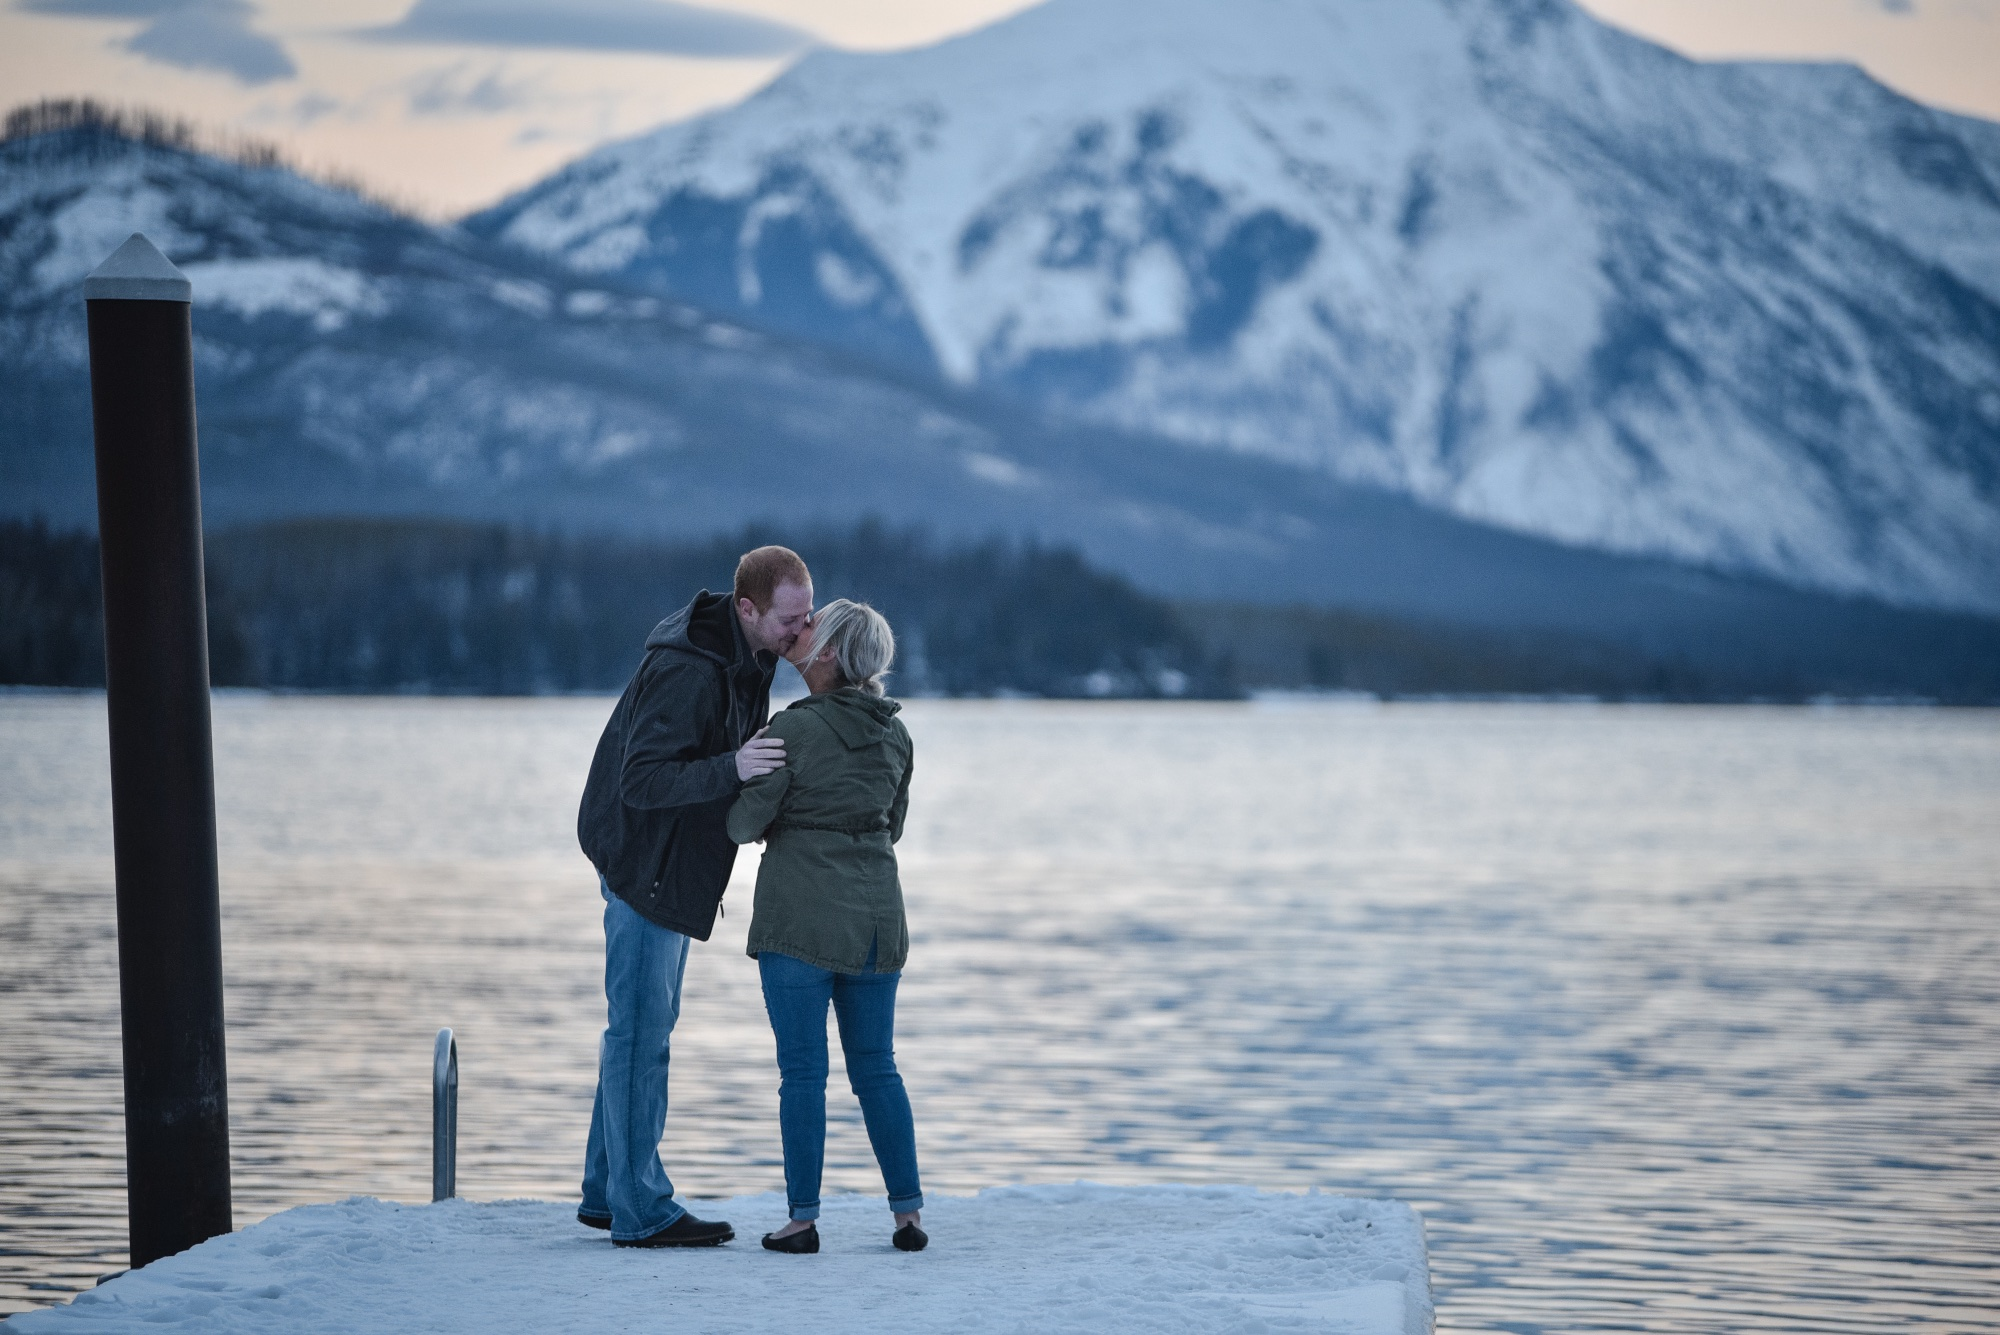 lindseyjanephotography_proposal006.jpg